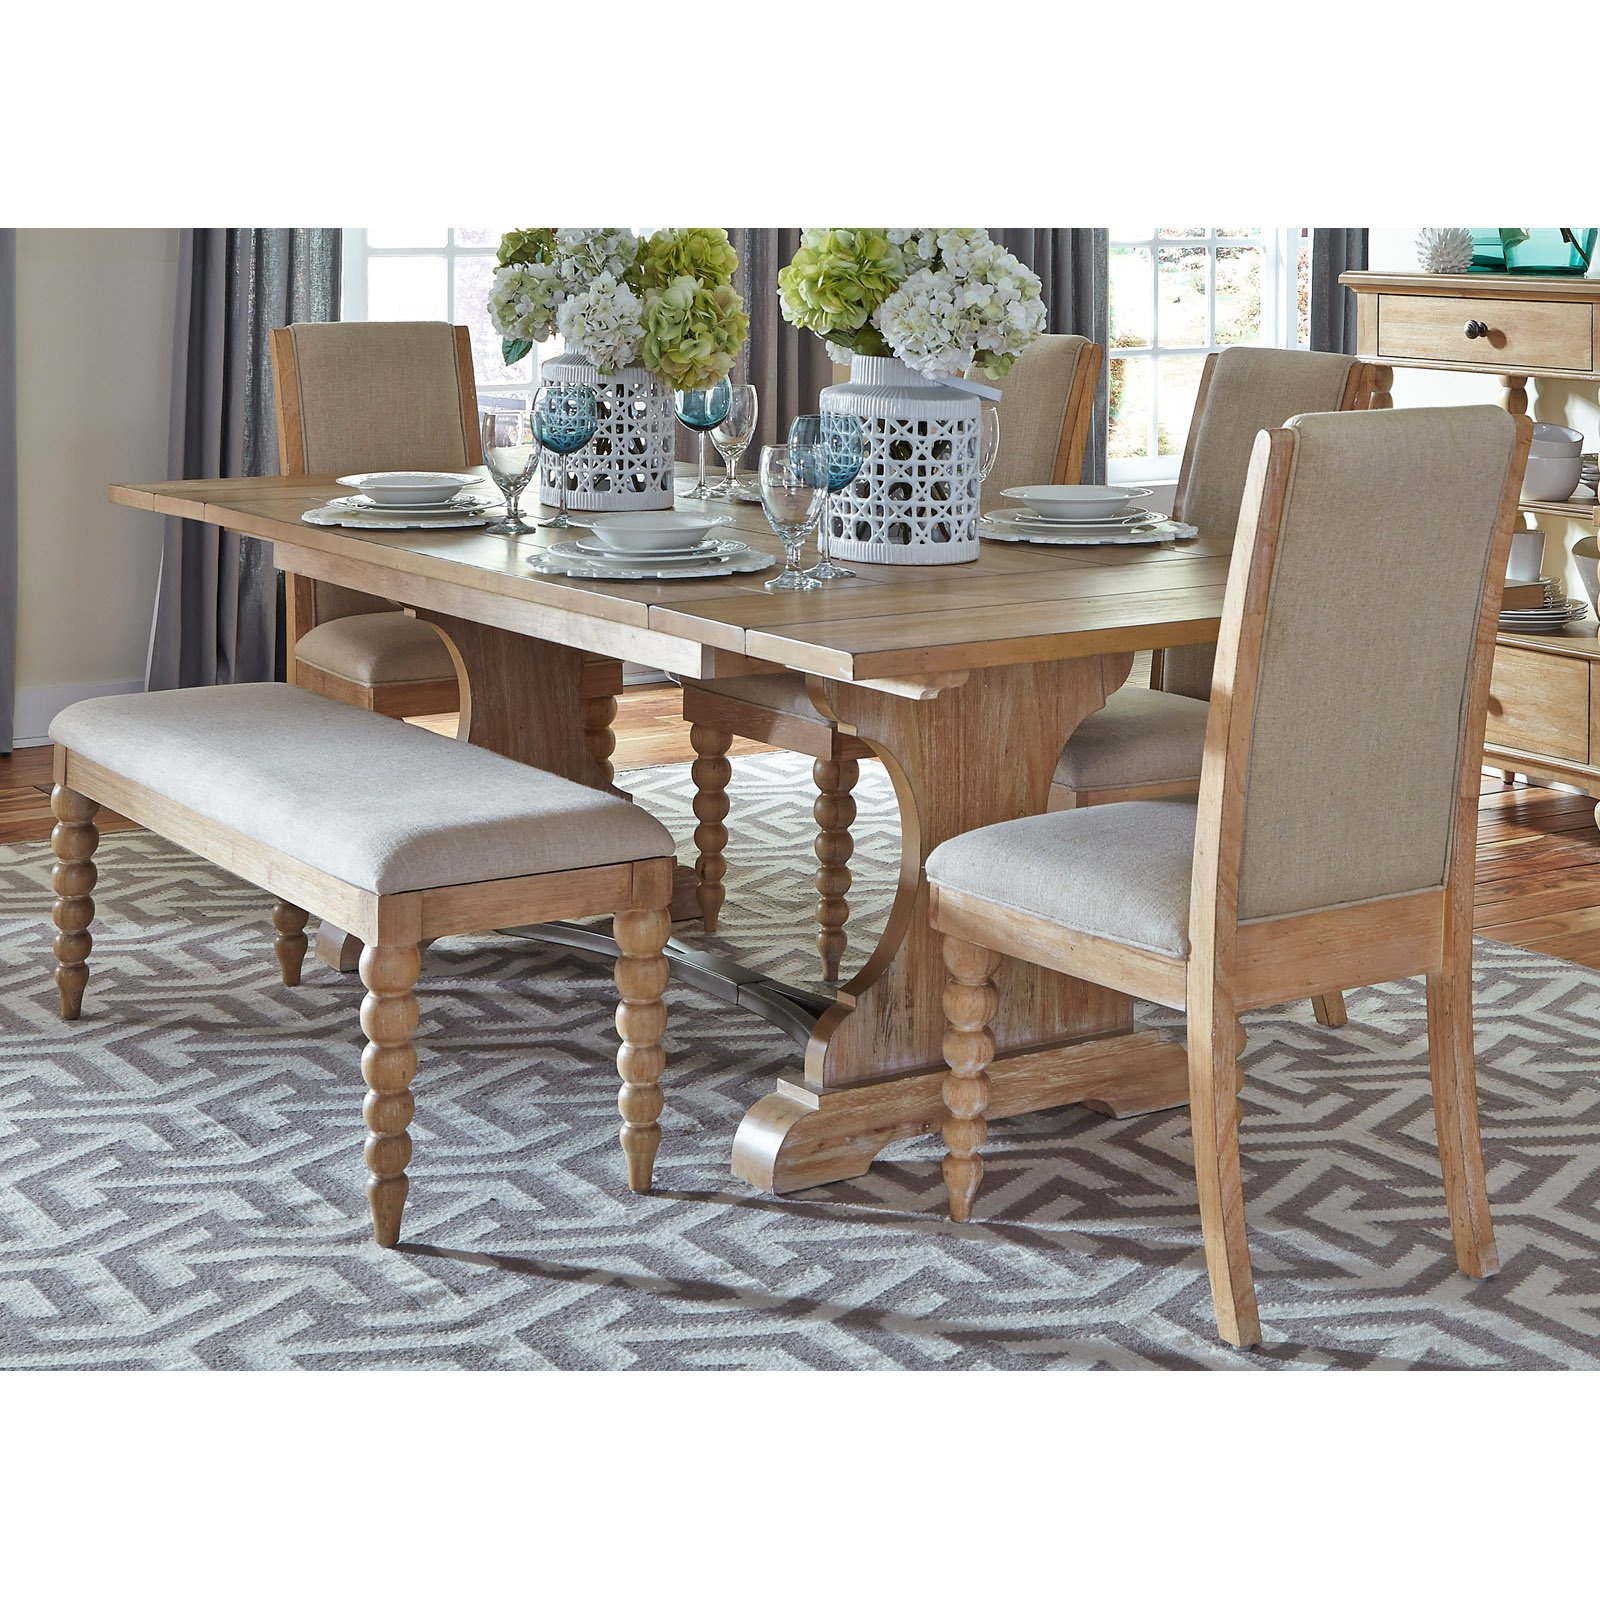 Liberty Furniture Industries Harbor View Trestle Dining Table